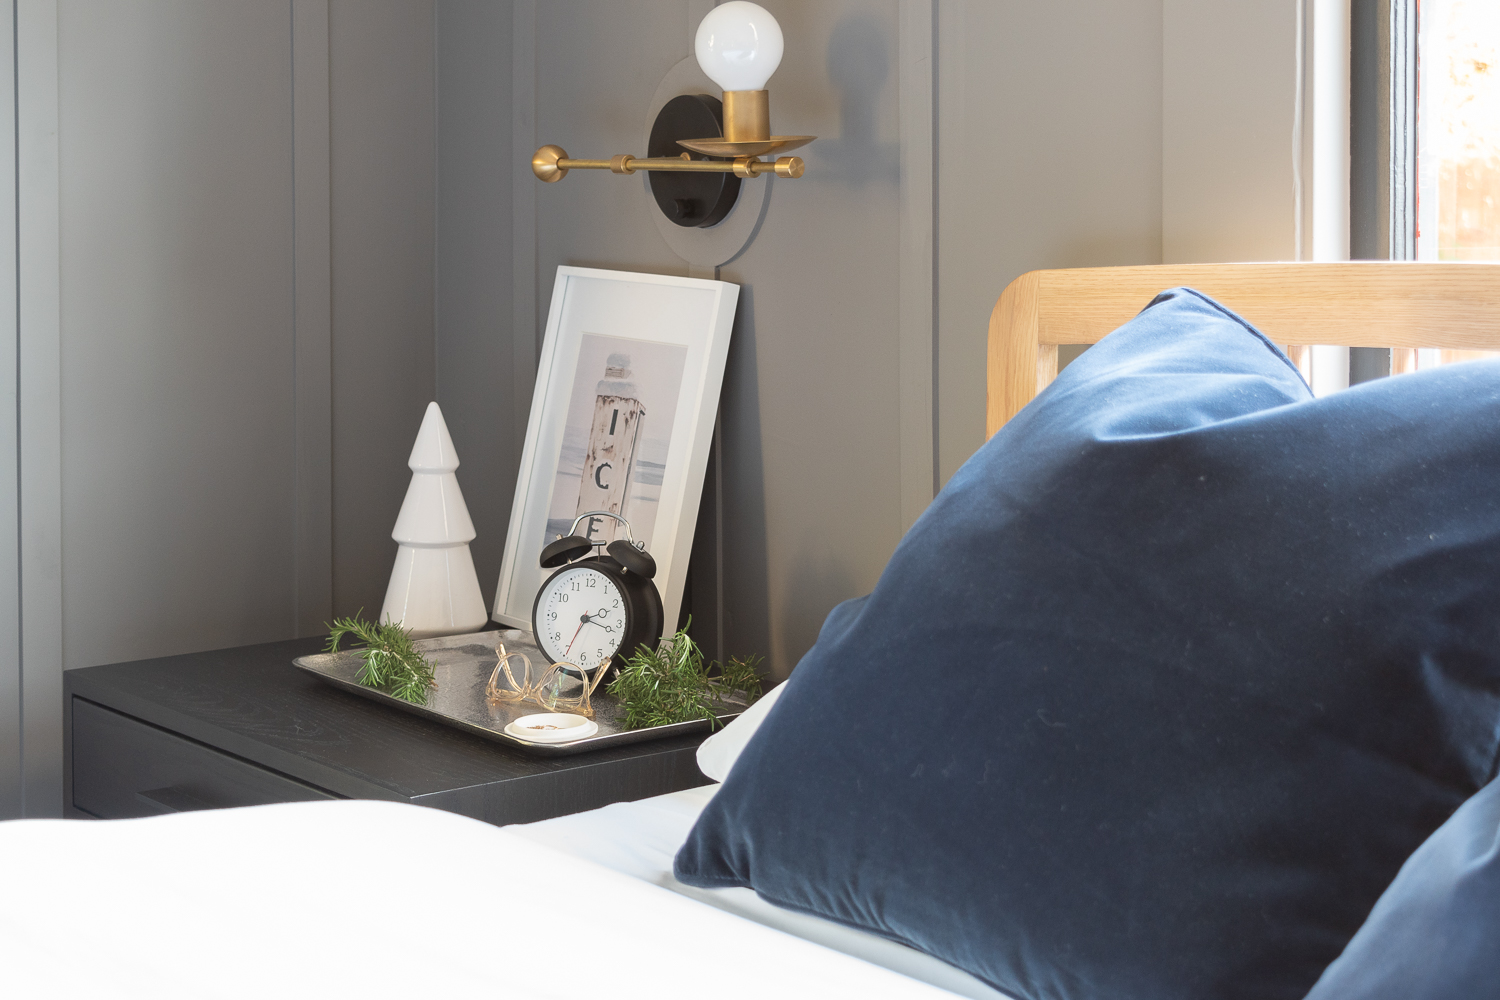 Bedside Holiday Decor for Christmas and Winter-0139.jpg